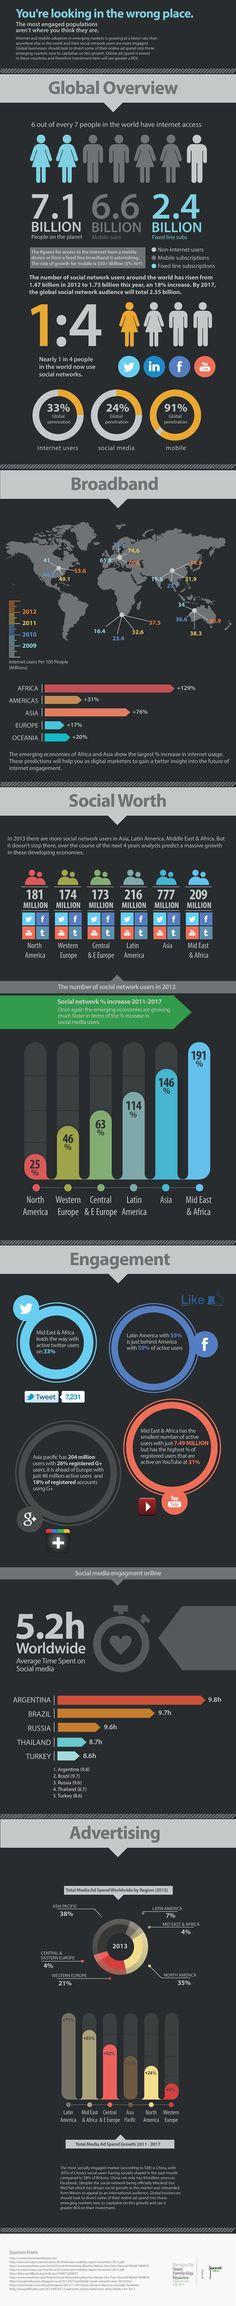 Global Internet, Mobile and Social Media Engagement and Usage Stats and Facts